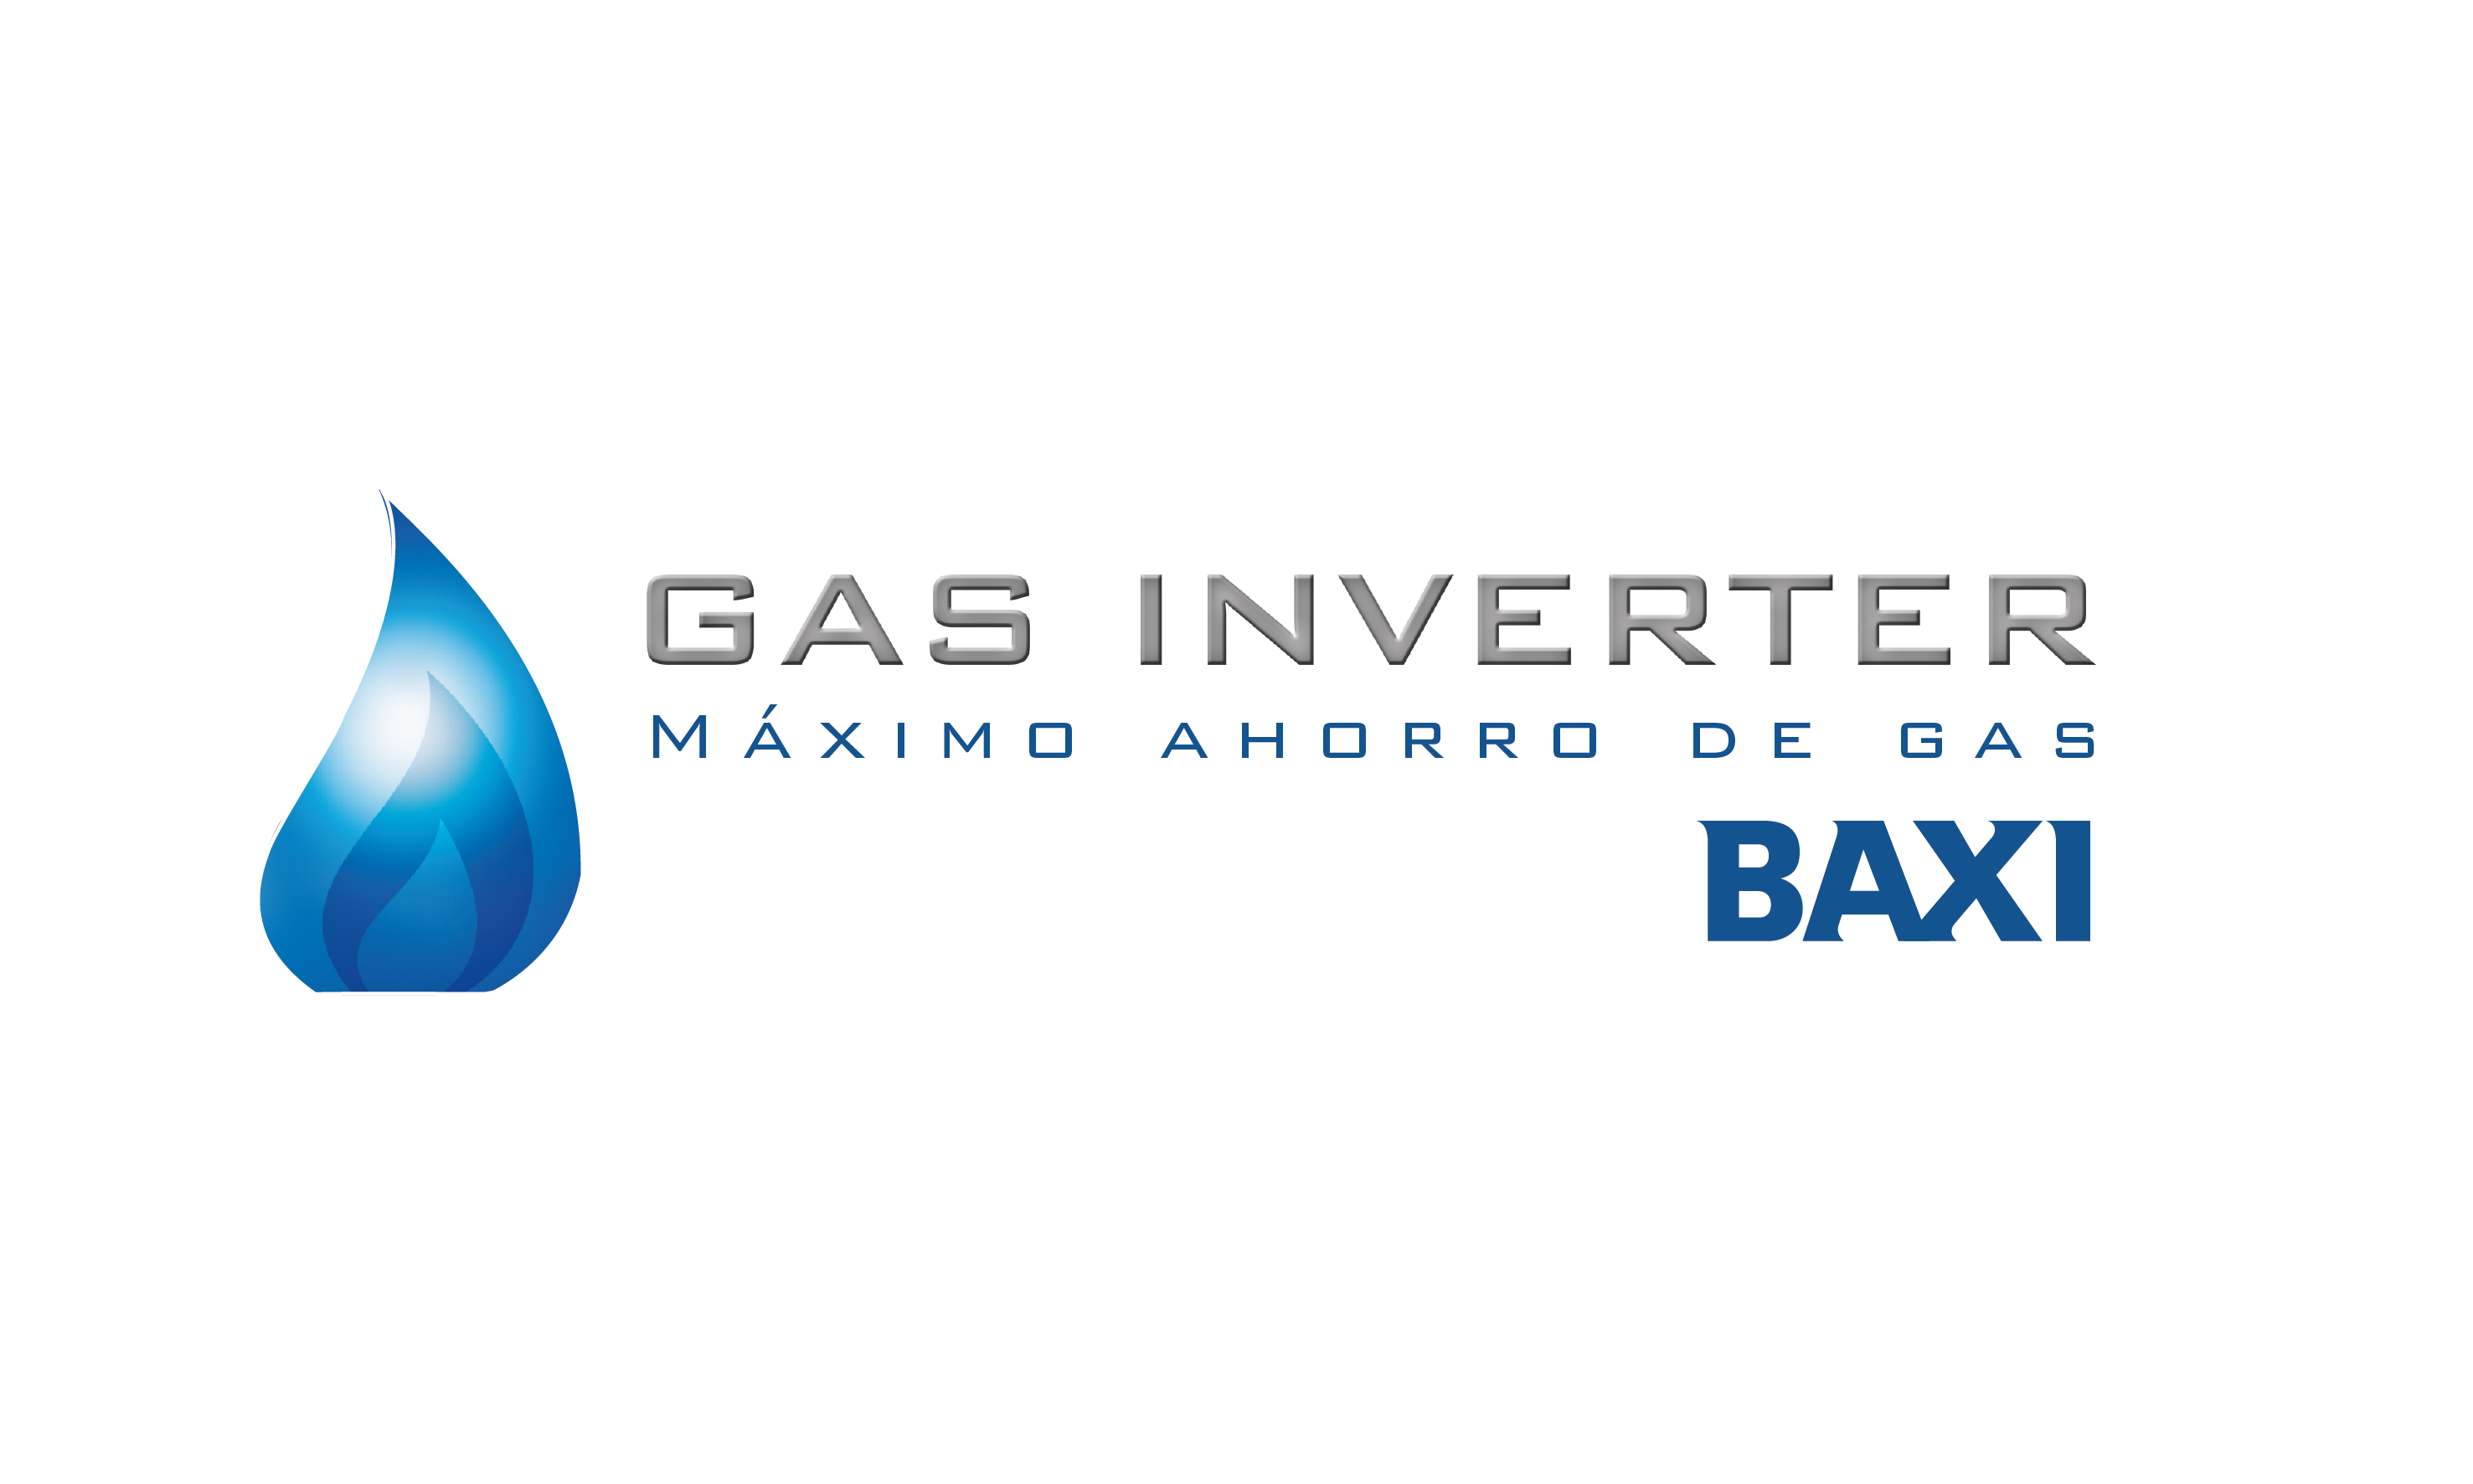 Gas Inverter Baxi